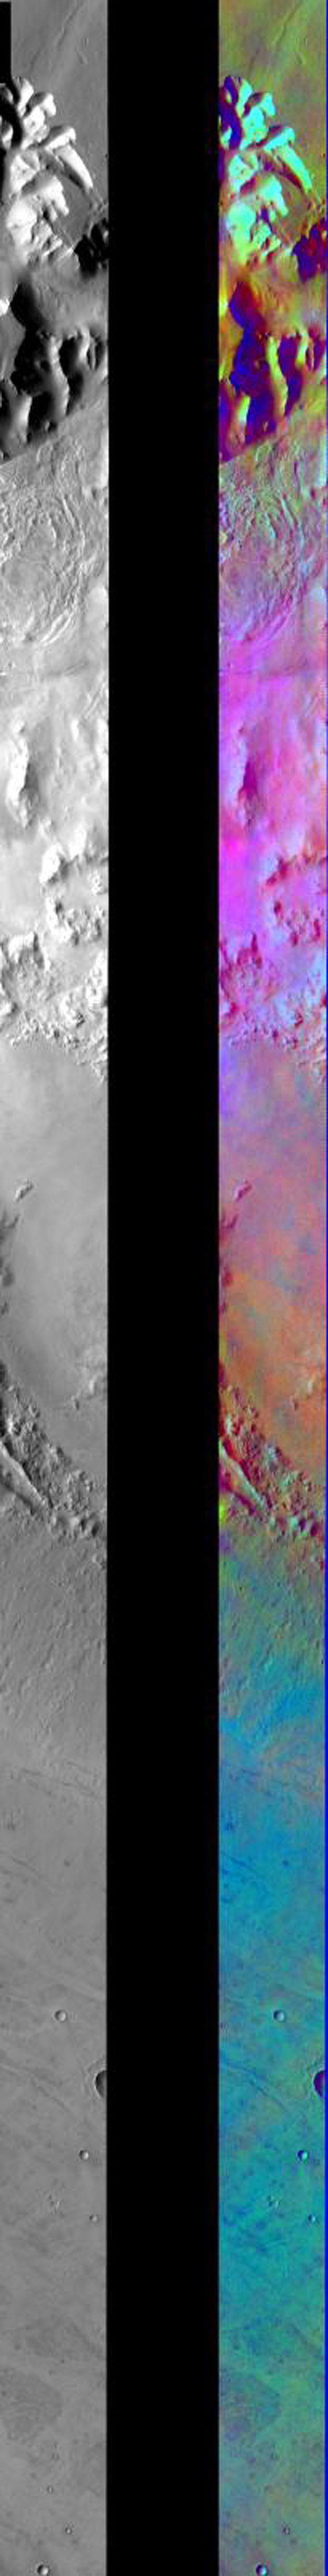 This image released on August 3, 2004 from NASA's 2001 Mars Odyssey shows a decorrelation stretch in parts of Ius Chasma/Oudemans Crater. Pink/magenta colors usually represent basaltic dunes, cyan the presence of water ice clouds, while green can be dust.